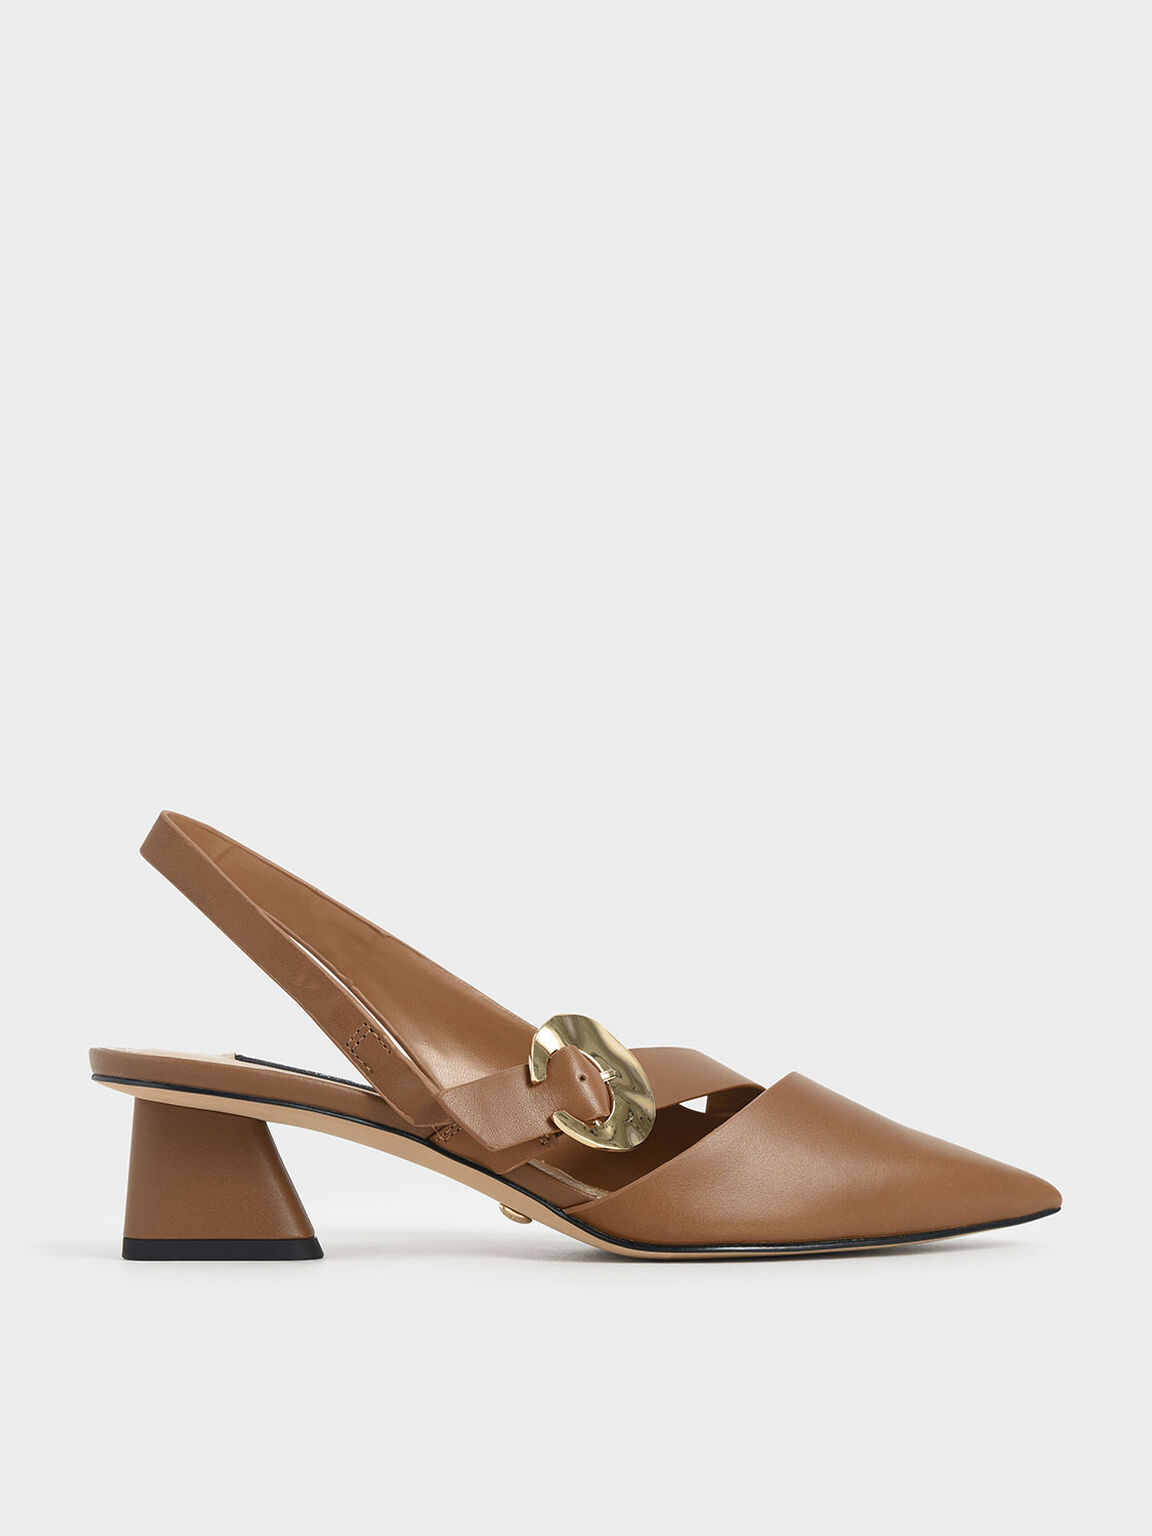 Leather Hammered Buckle Slingback Pumps, Brown, hi-res